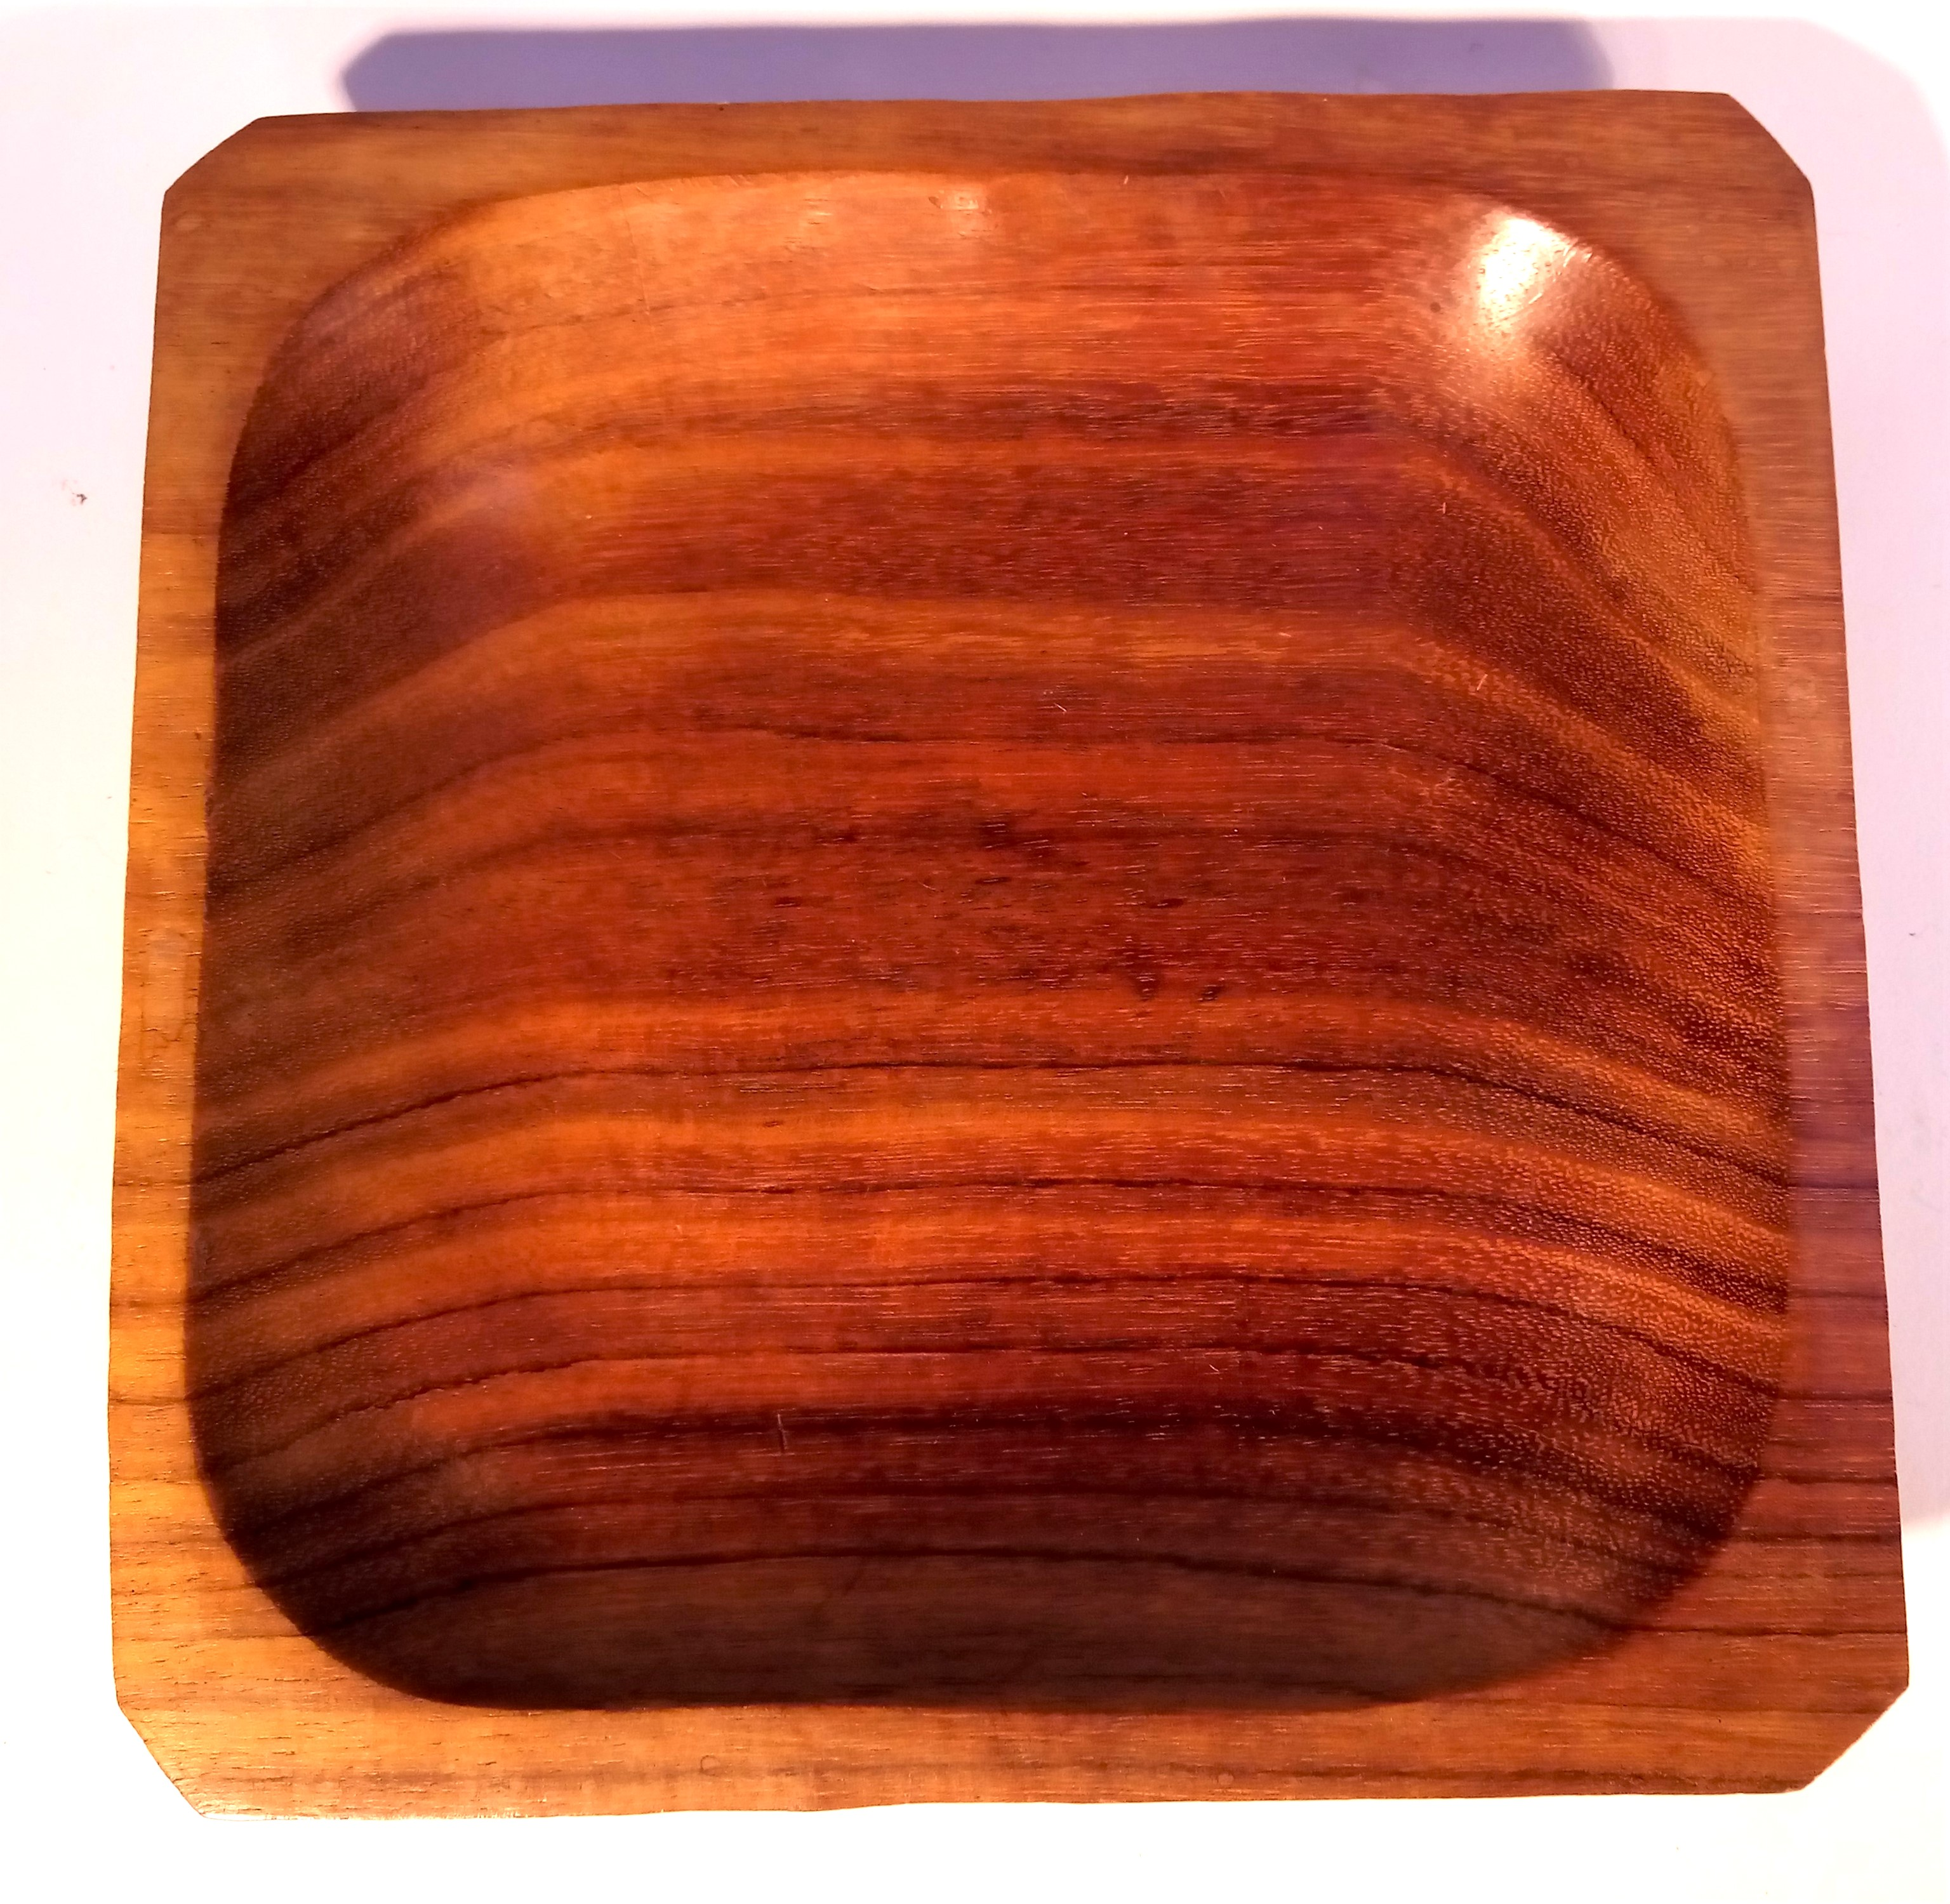 Hand carved hardwood dish from Indonesia. 20 x 20 x 3cm. New